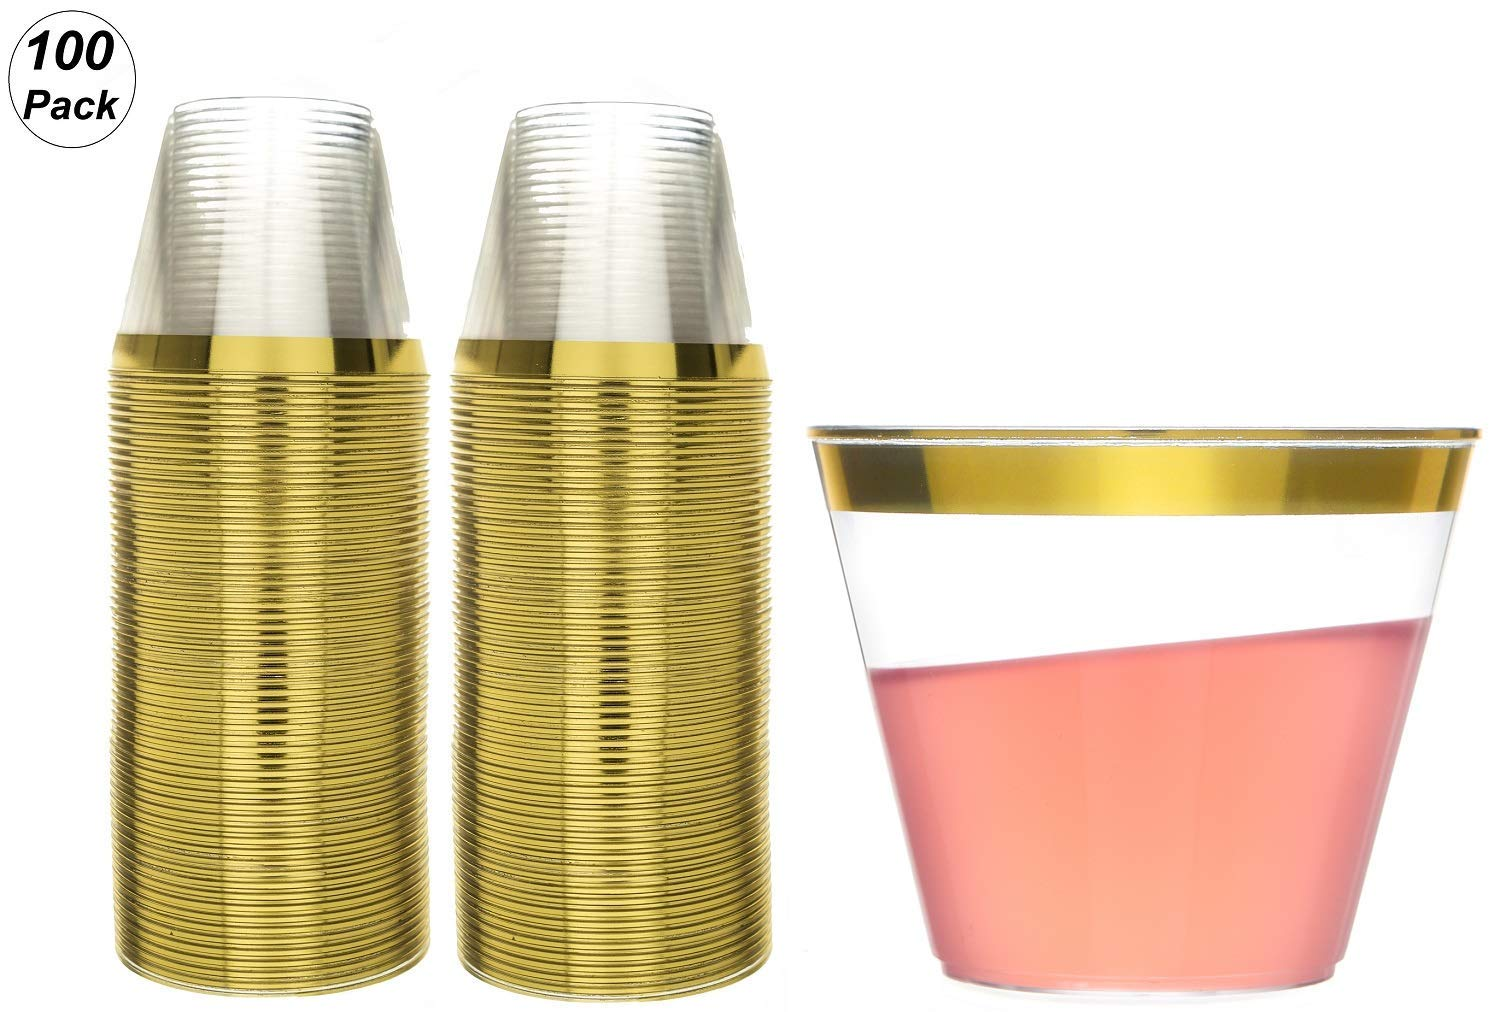 9 oz Party Cups Old Fashioned Tumblers by Oojami (100)